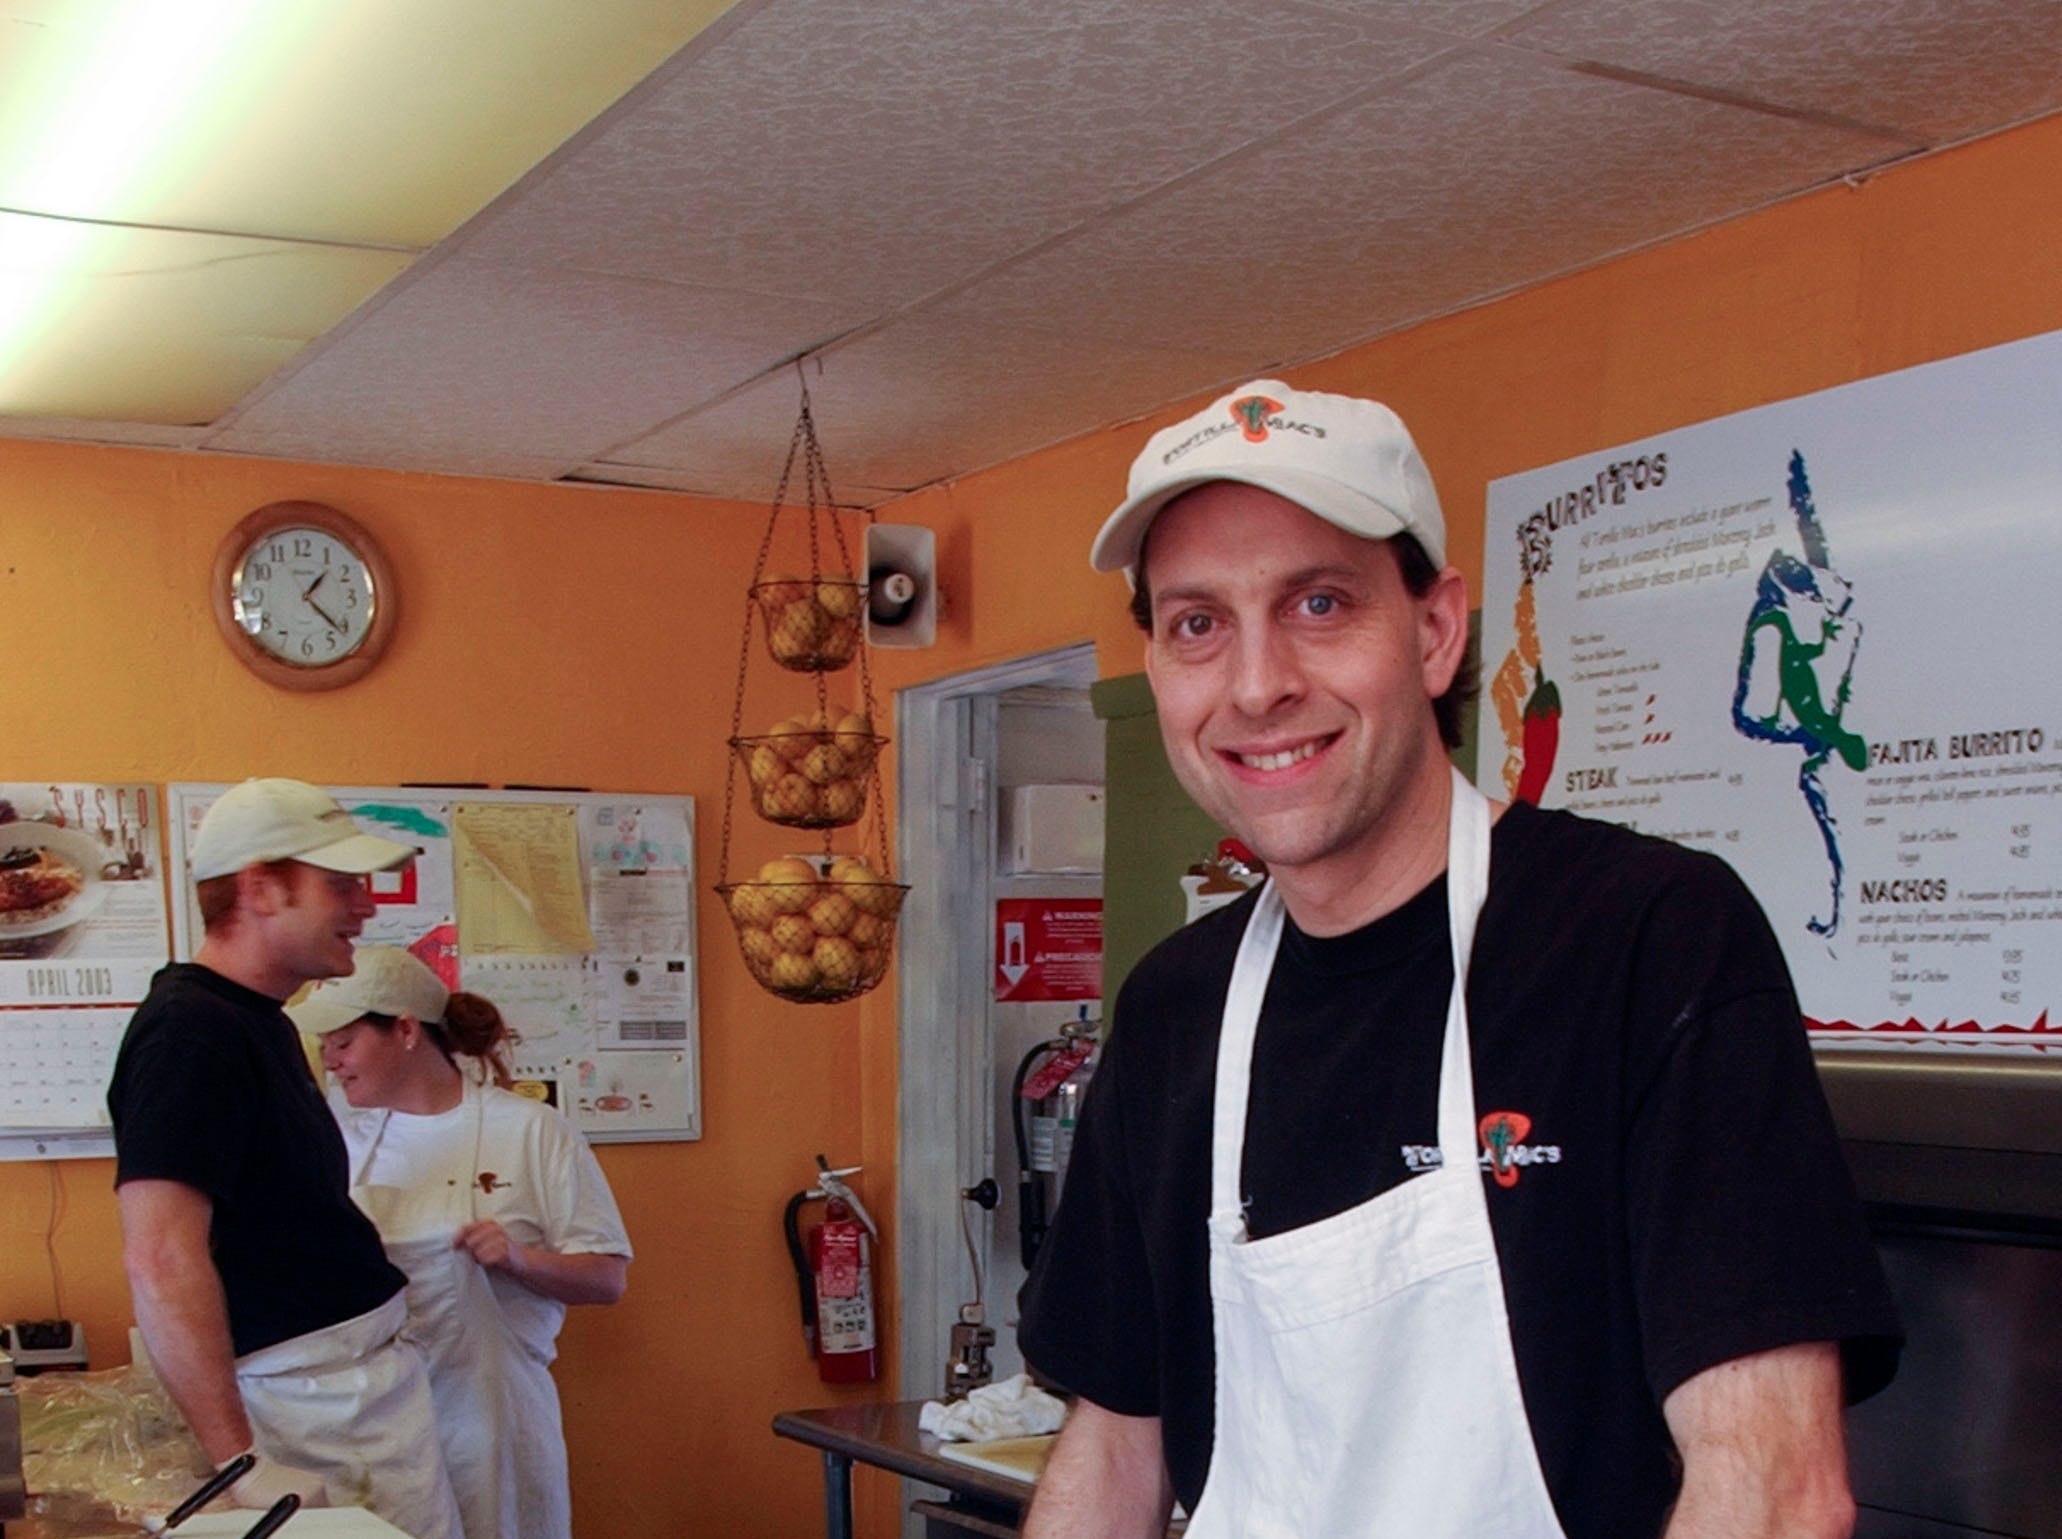 Harold McLean is the owner and operator of Tortilla Mac's in the former Blue Circle Building on Union Avenue in 2001.